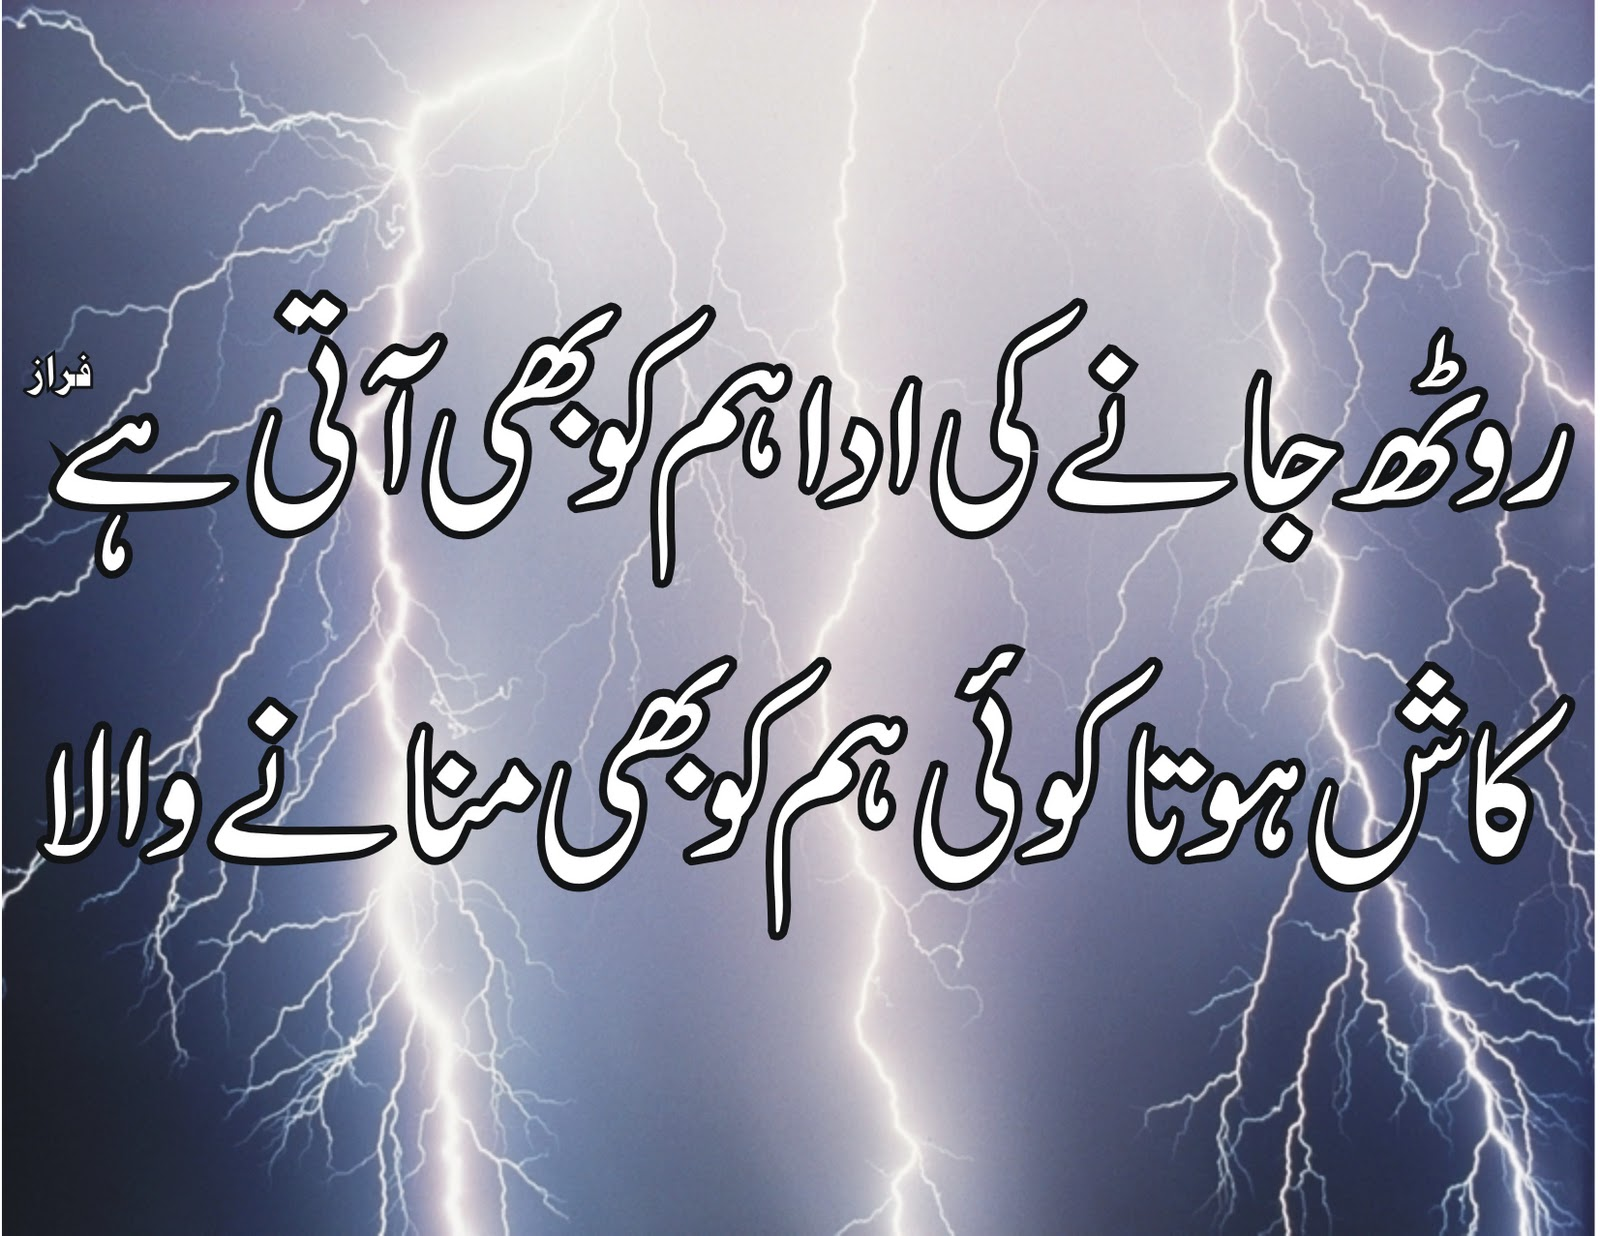 http://4.bp.blogspot.com/-ZYjF4lGoU4A/UFBtAzkY5tI/AAAAAAAADJA/DNGtYF1g_Co/s1600/Sad+Urdu+sad+poetry+wallpapers+%2816%29.jpg